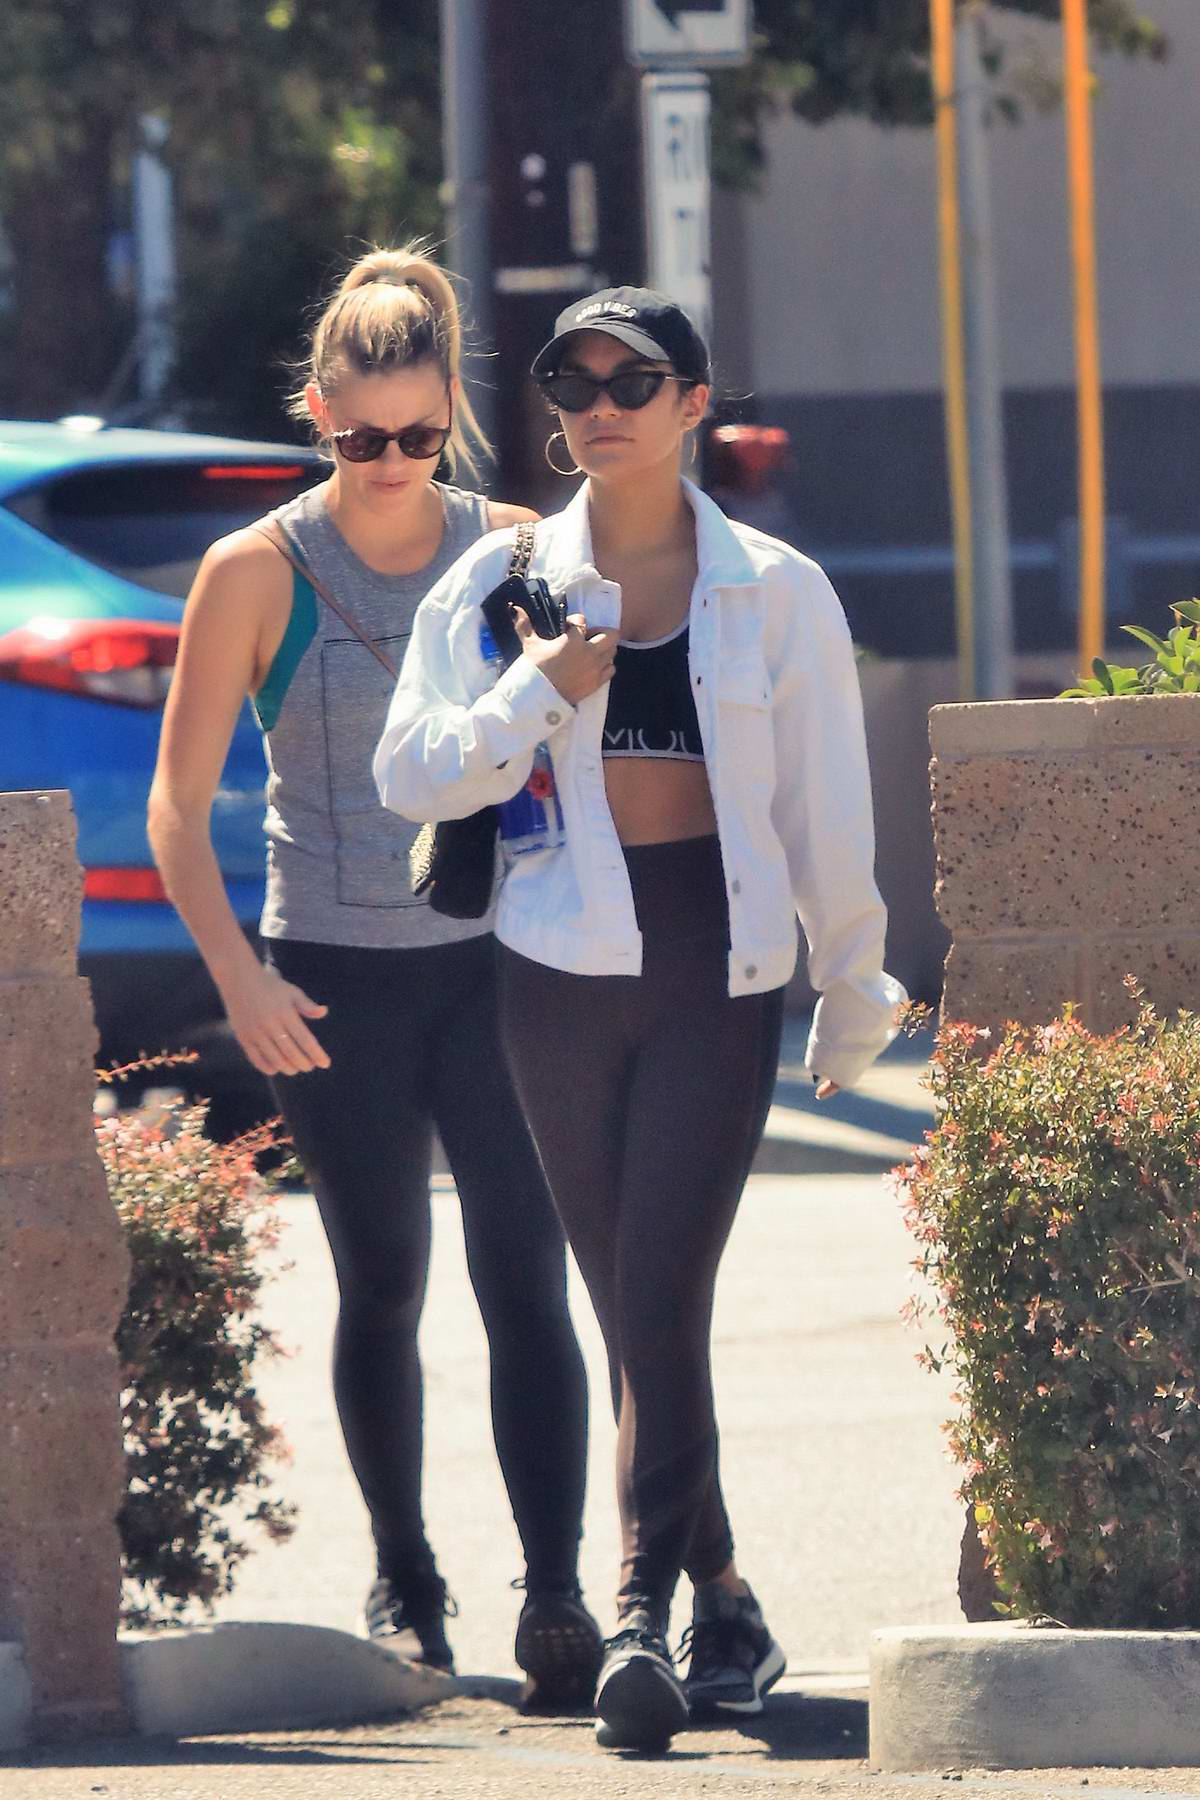 Vanessa Hudgens spotted in a denim jacket over her workout gear as she heads to the gym with a friend in Los Angeles